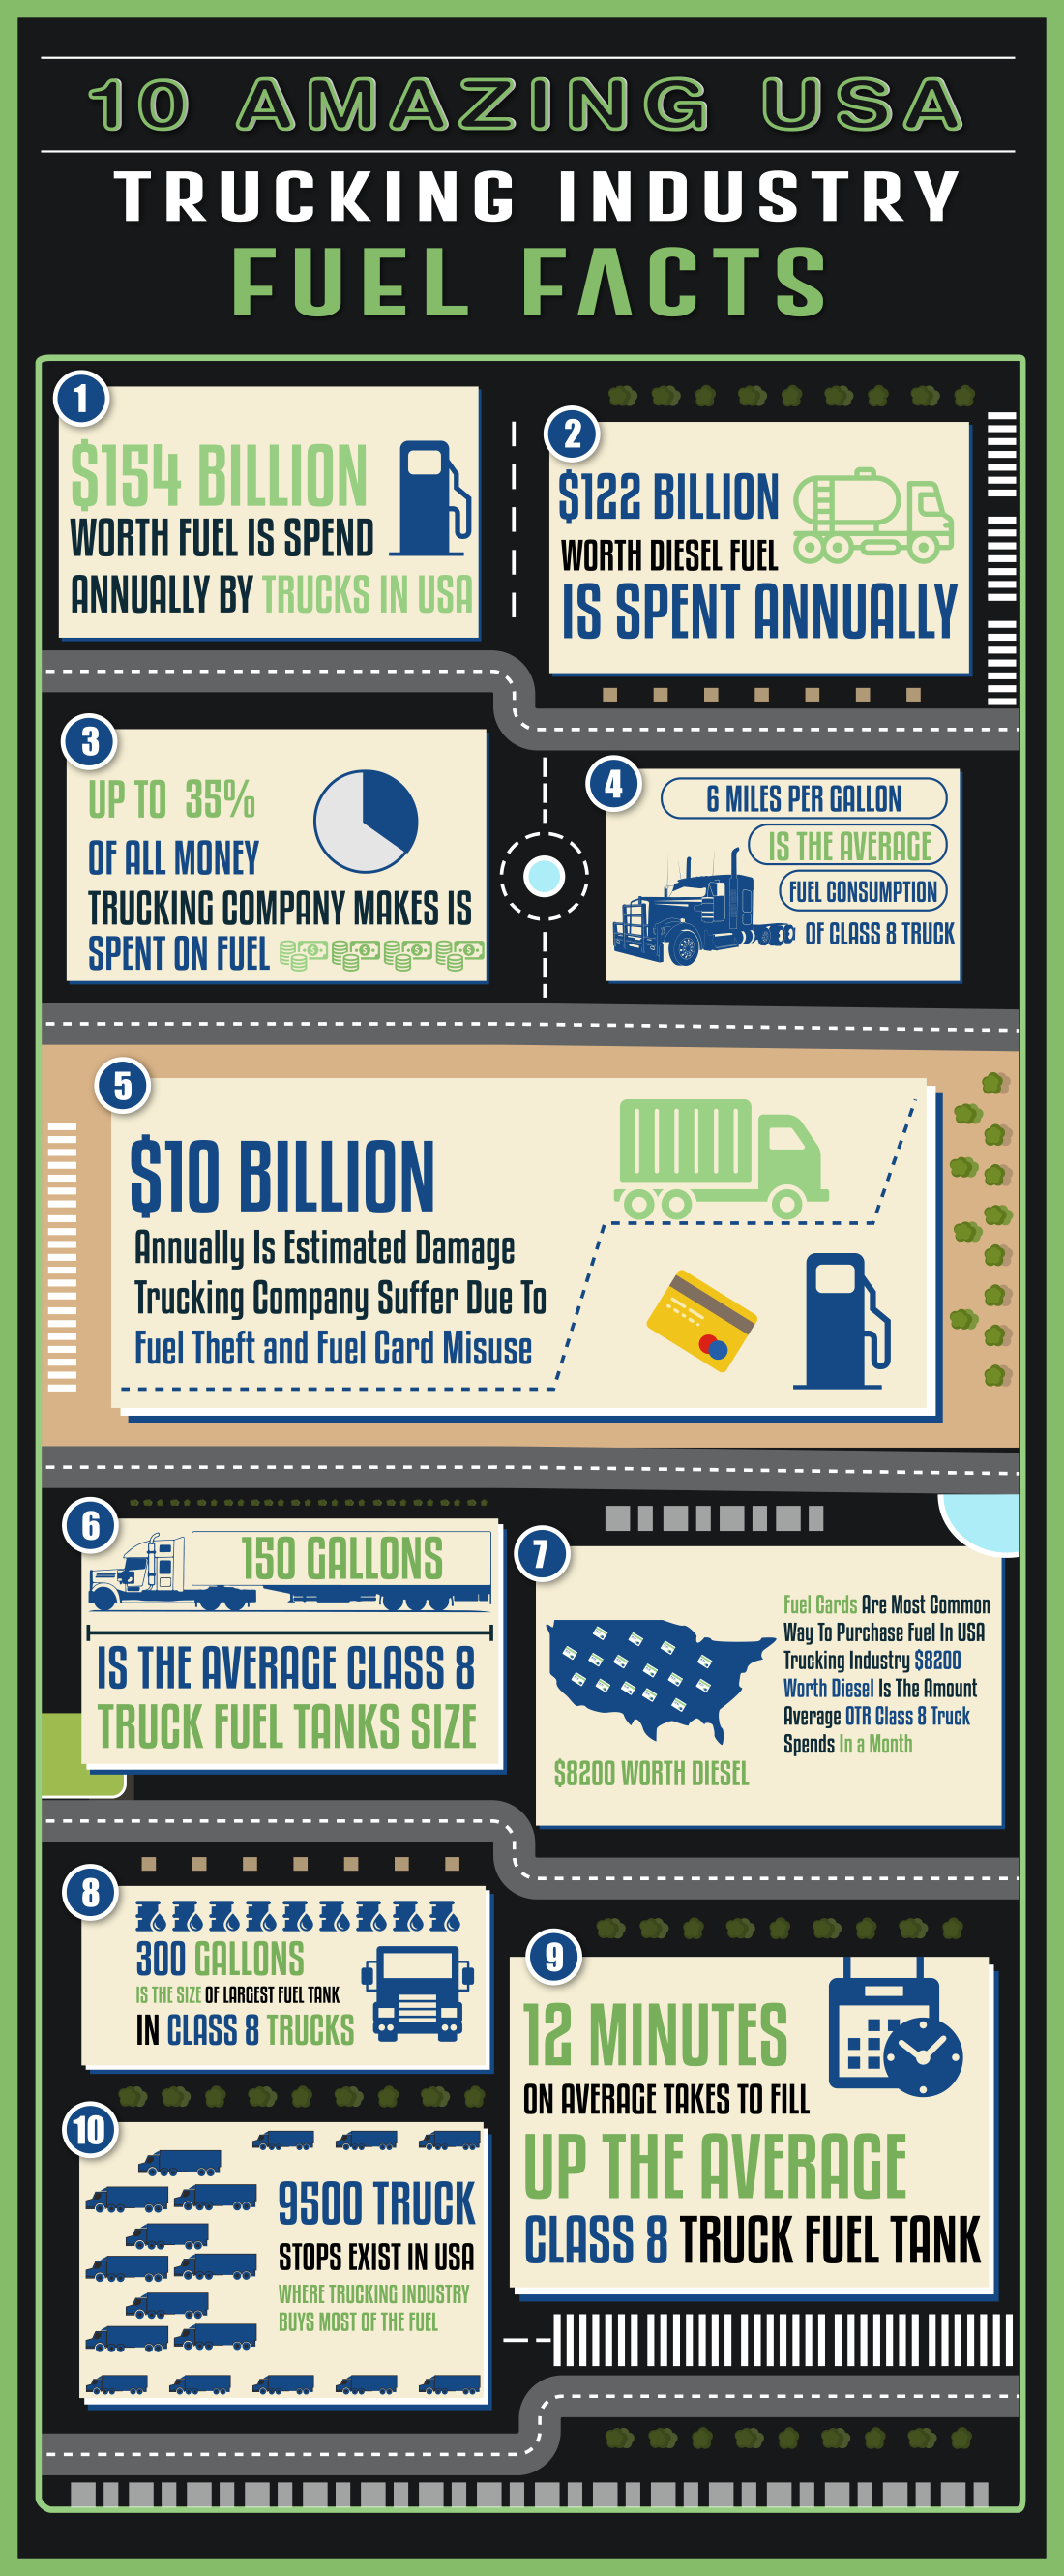 10 Amazing USA Trucking Industry Fuel Facts